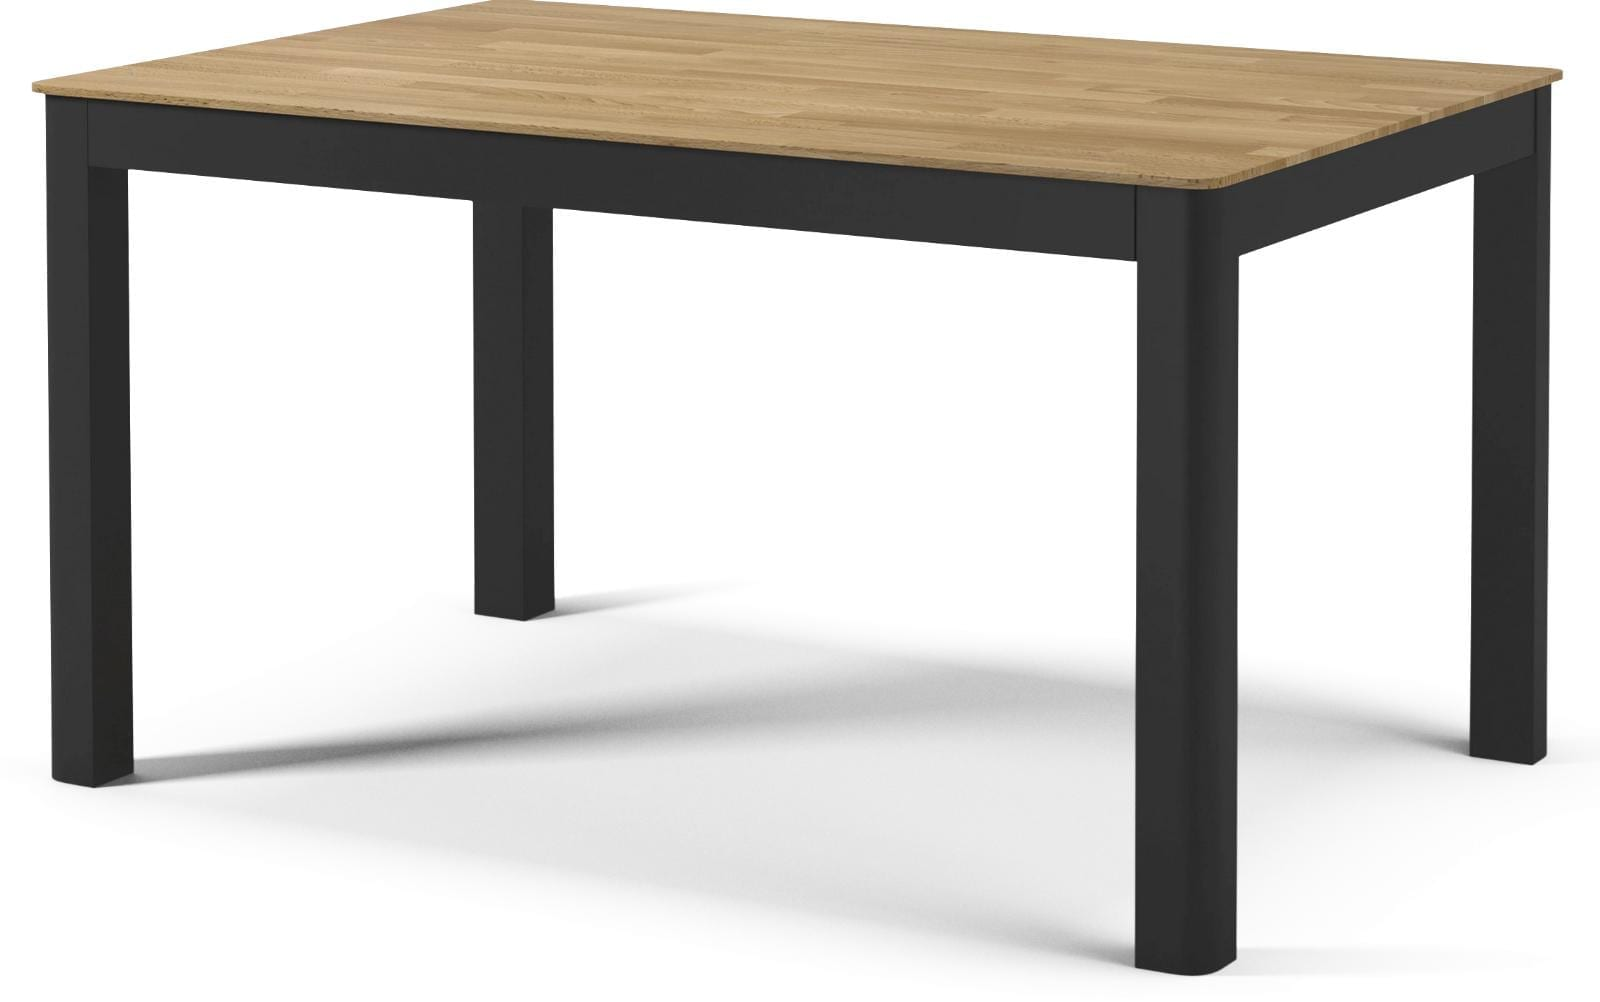 Node Dining Table 90x140 Cm Oiled Oak Anthracite Lacquered 2310